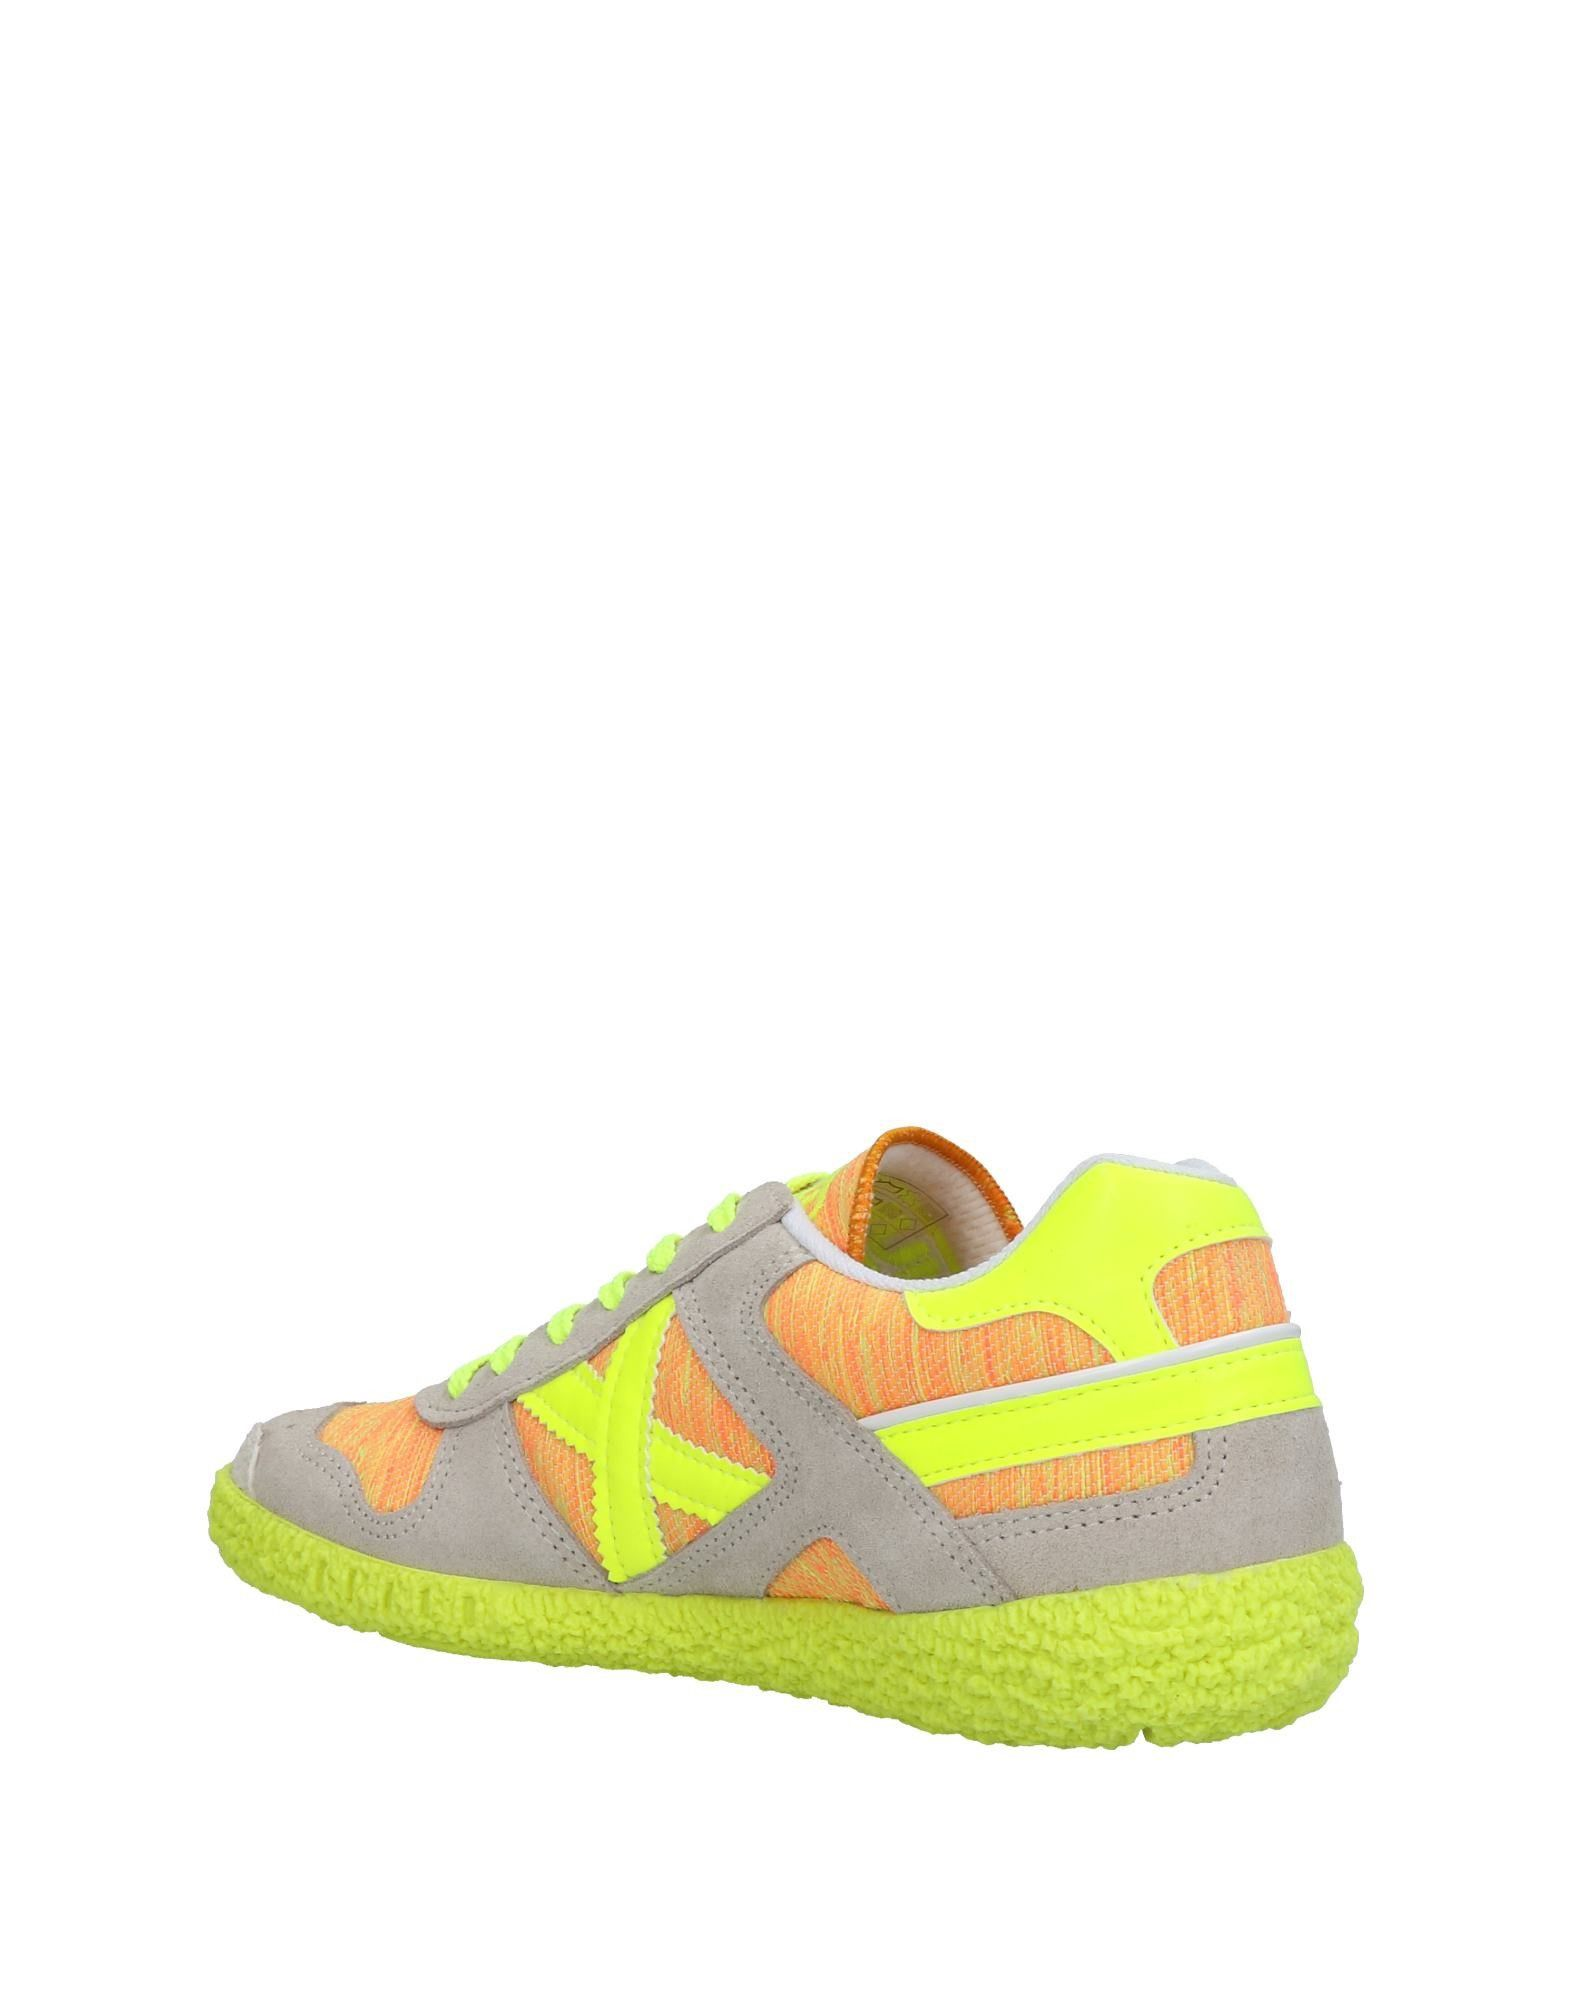 MUNICH Sneakers Homme YELLOW, 41